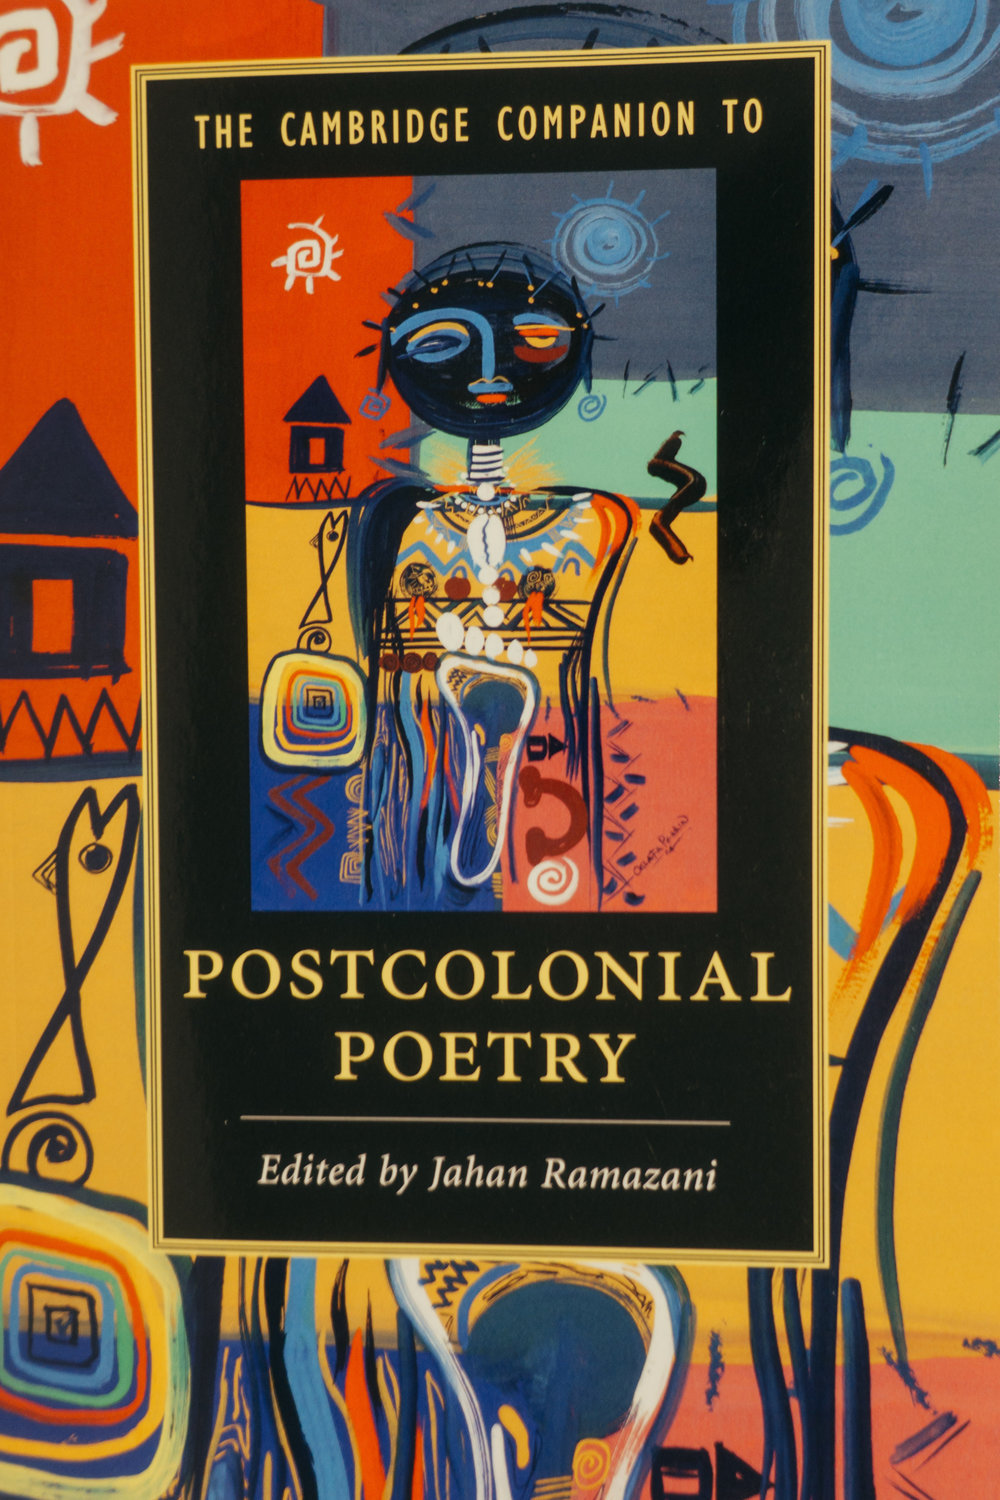 'Australia and New Zealand/Aotearoa', The Cambridge Companion to Postcolonial Poetry,ed Jahan Ramazani, Cambridge University Press, Cambridge, 2017.